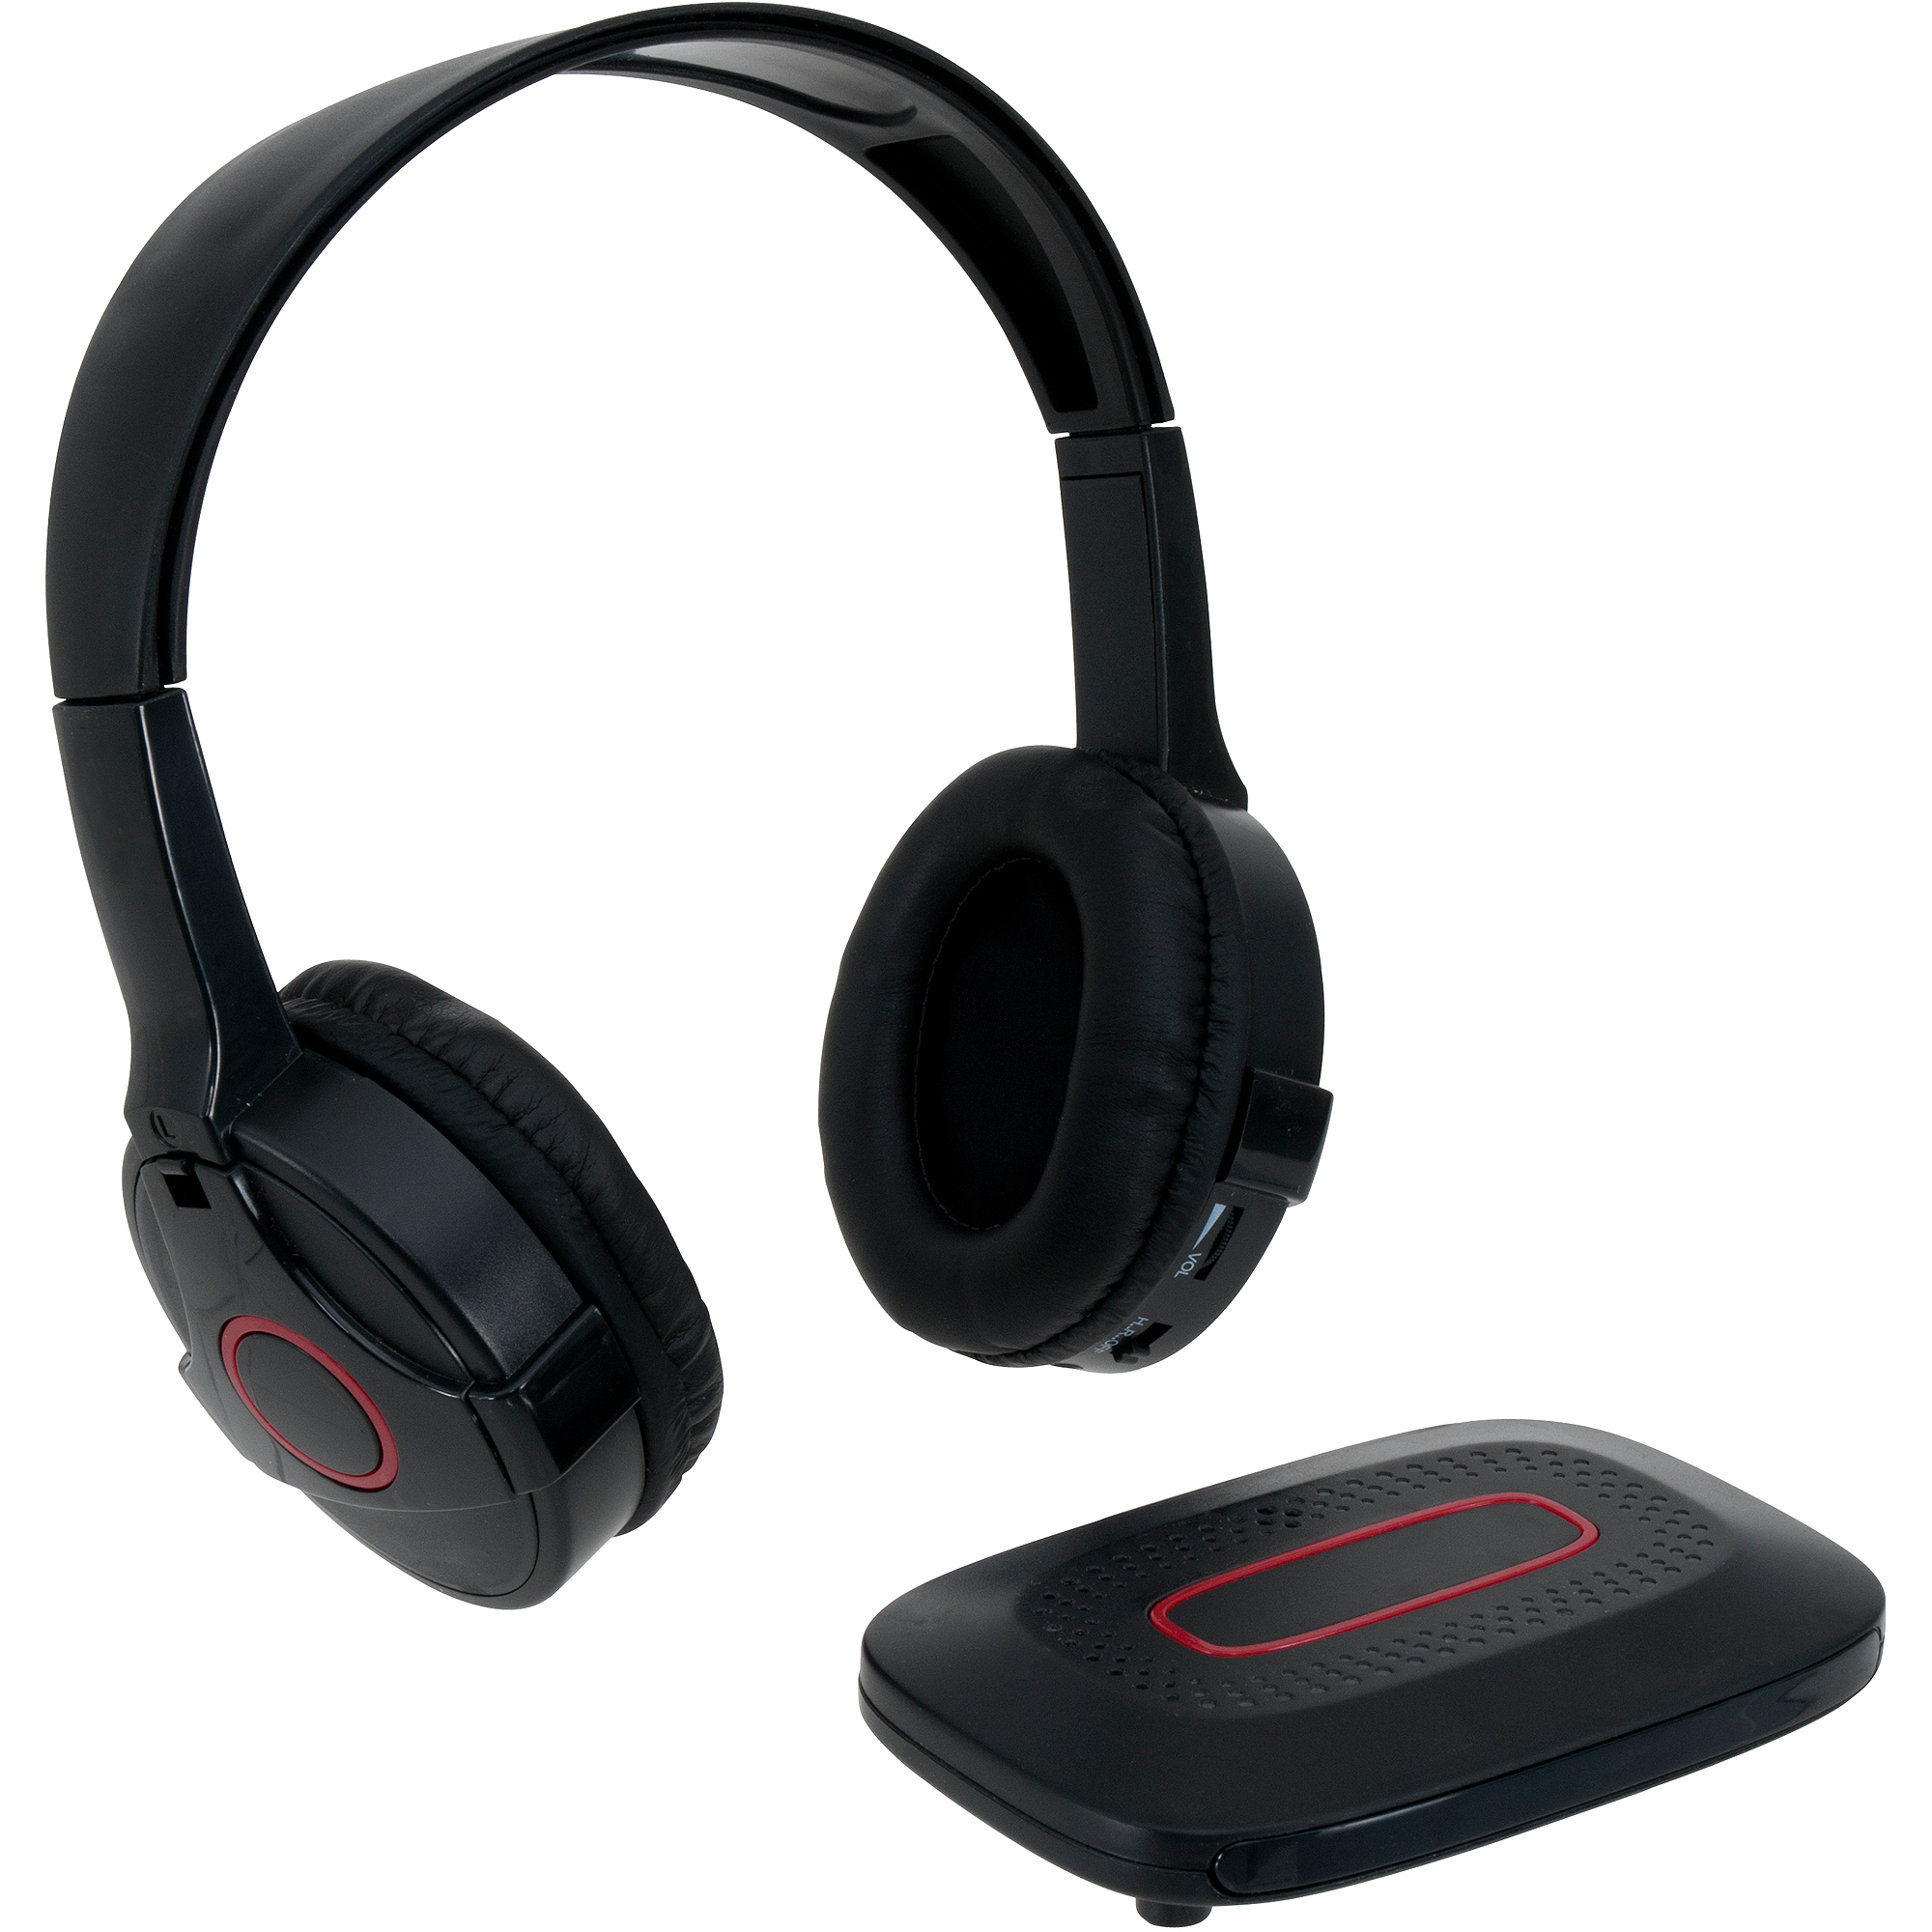 lg hbs 750 tone pro stereo bluetooth headset black. Black Bedroom Furniture Sets. Home Design Ideas